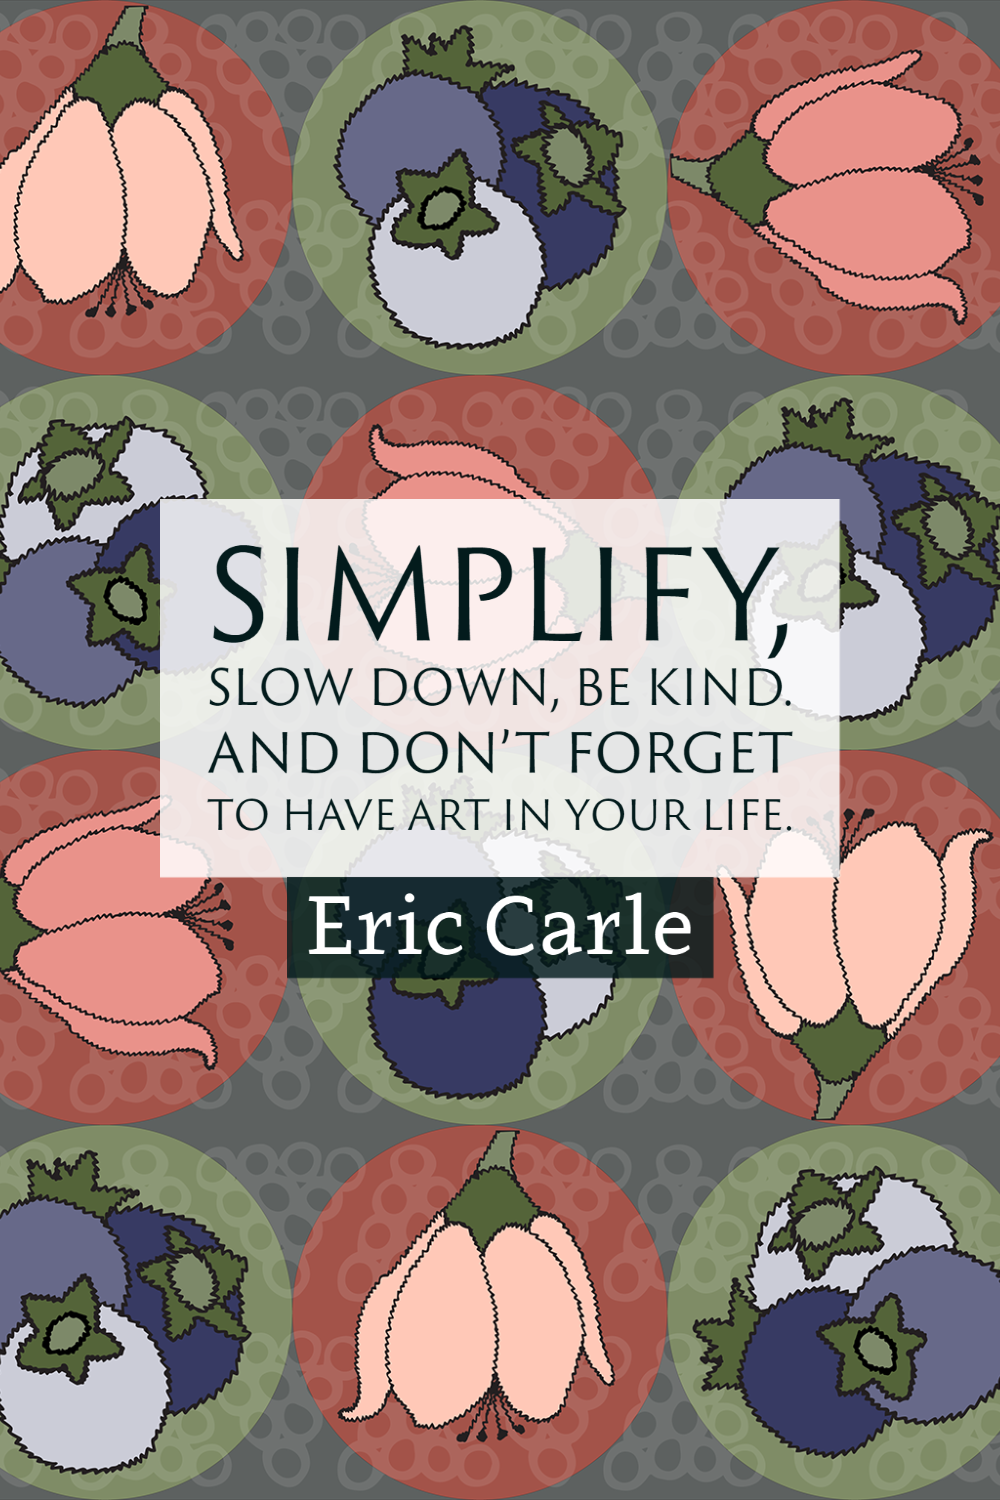 """""""Simplify, slow down, be kind. And don't forget to have art in your life."""" ~Eric Carle"""